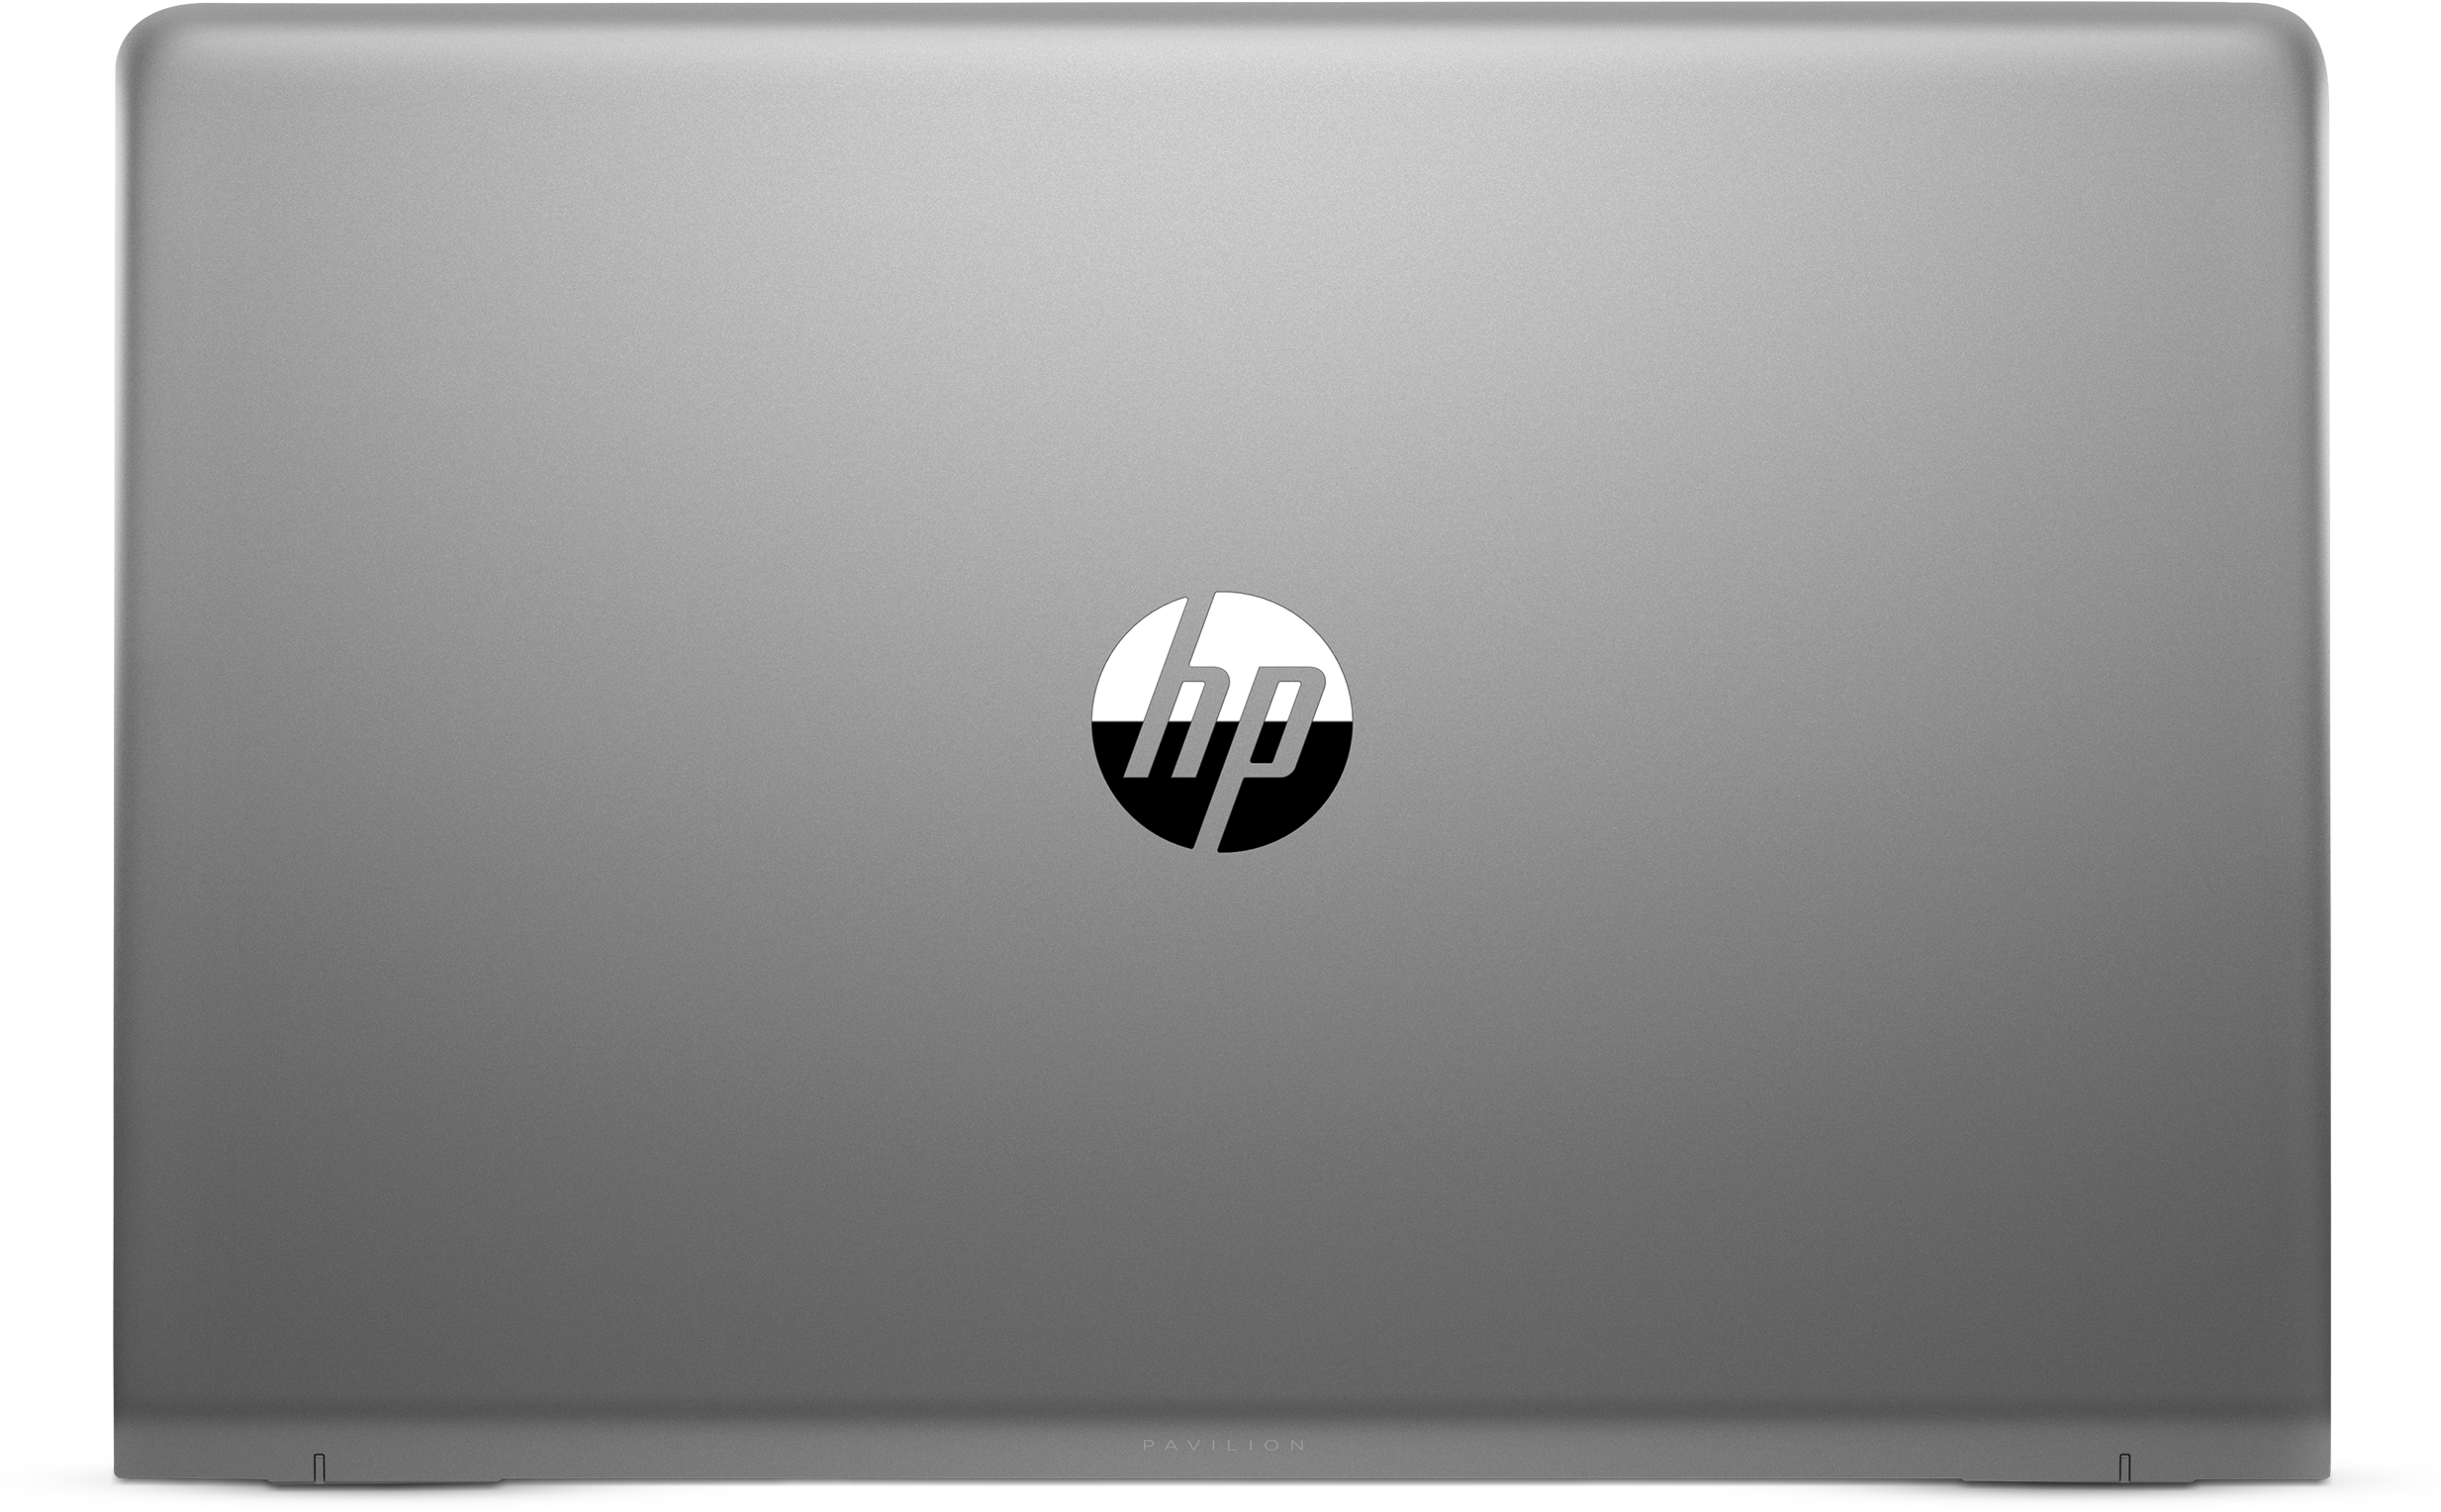 HP Pavilion DV9599 User Manual Download. entry Doctor trabajo element decision error monitor